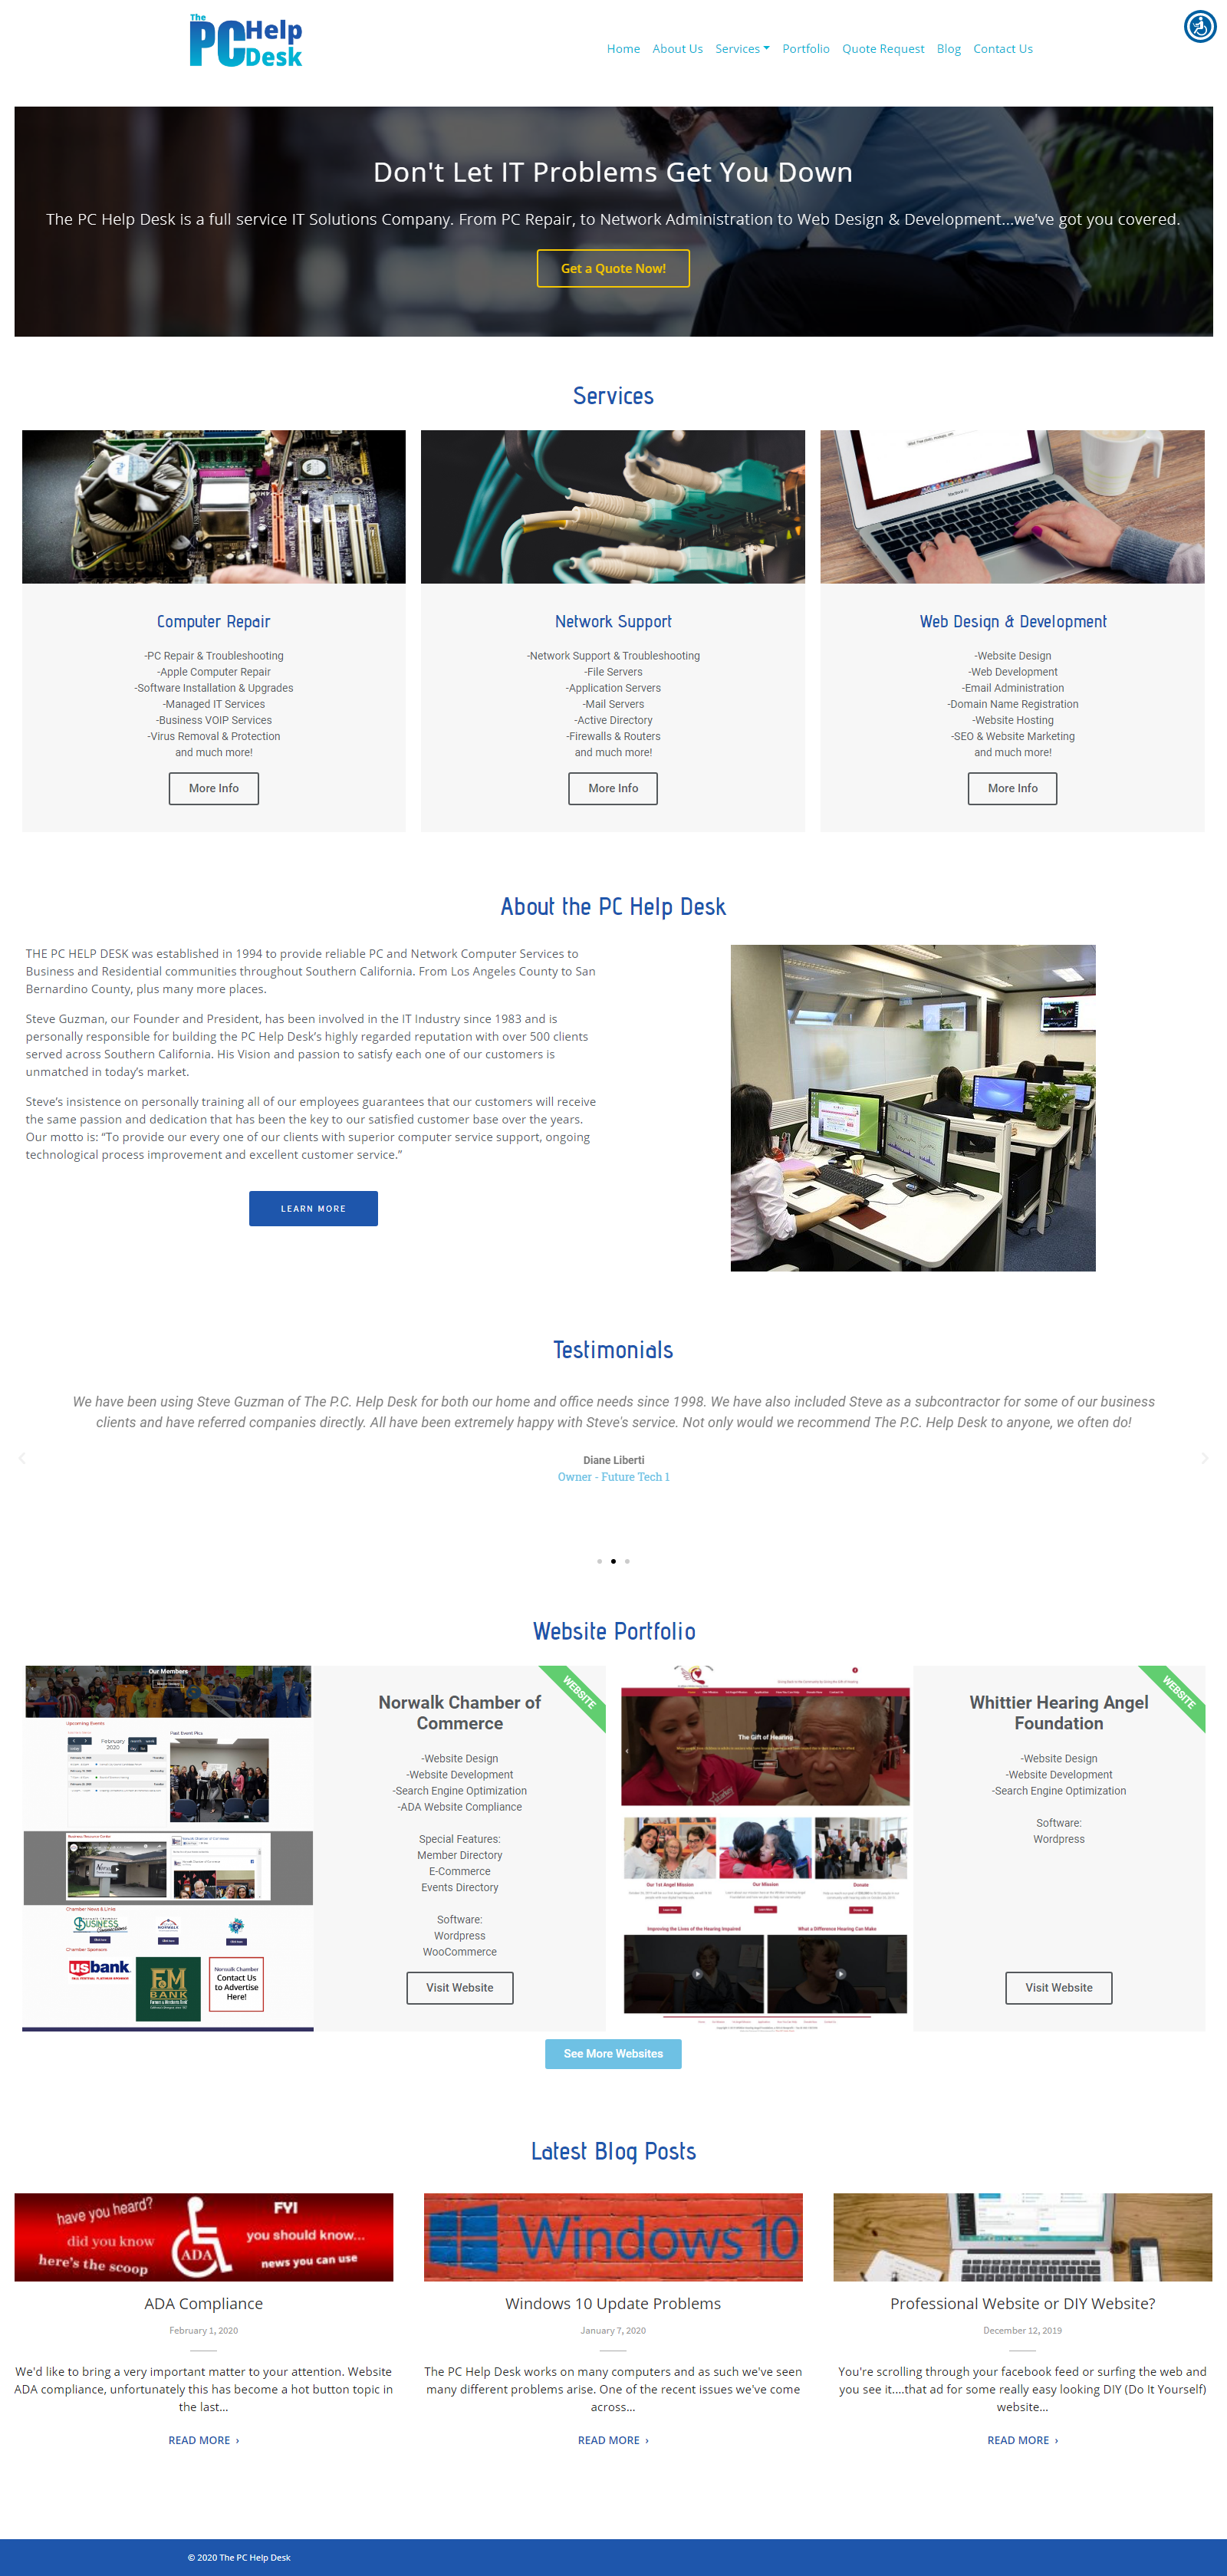 The PC Help Desk Website